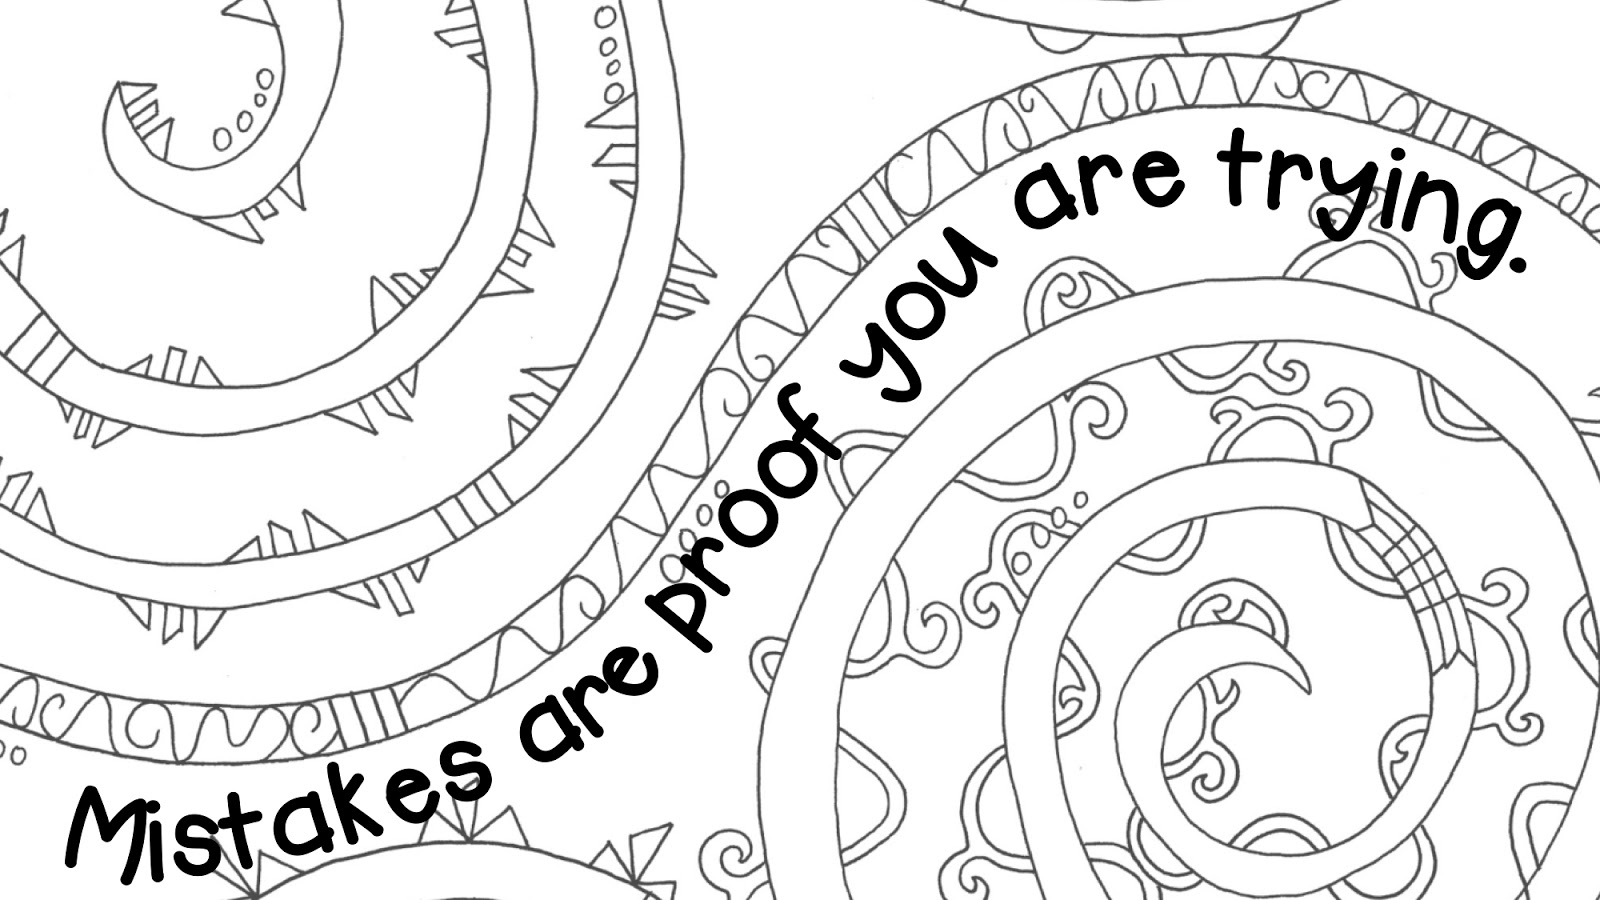 Free coloring pages growth mindset -  I First Thought Of All The Nice Growth Mindset Coloring Pages I Ve Seen And Thought They Would Look Great Hanging Up In The Classroom